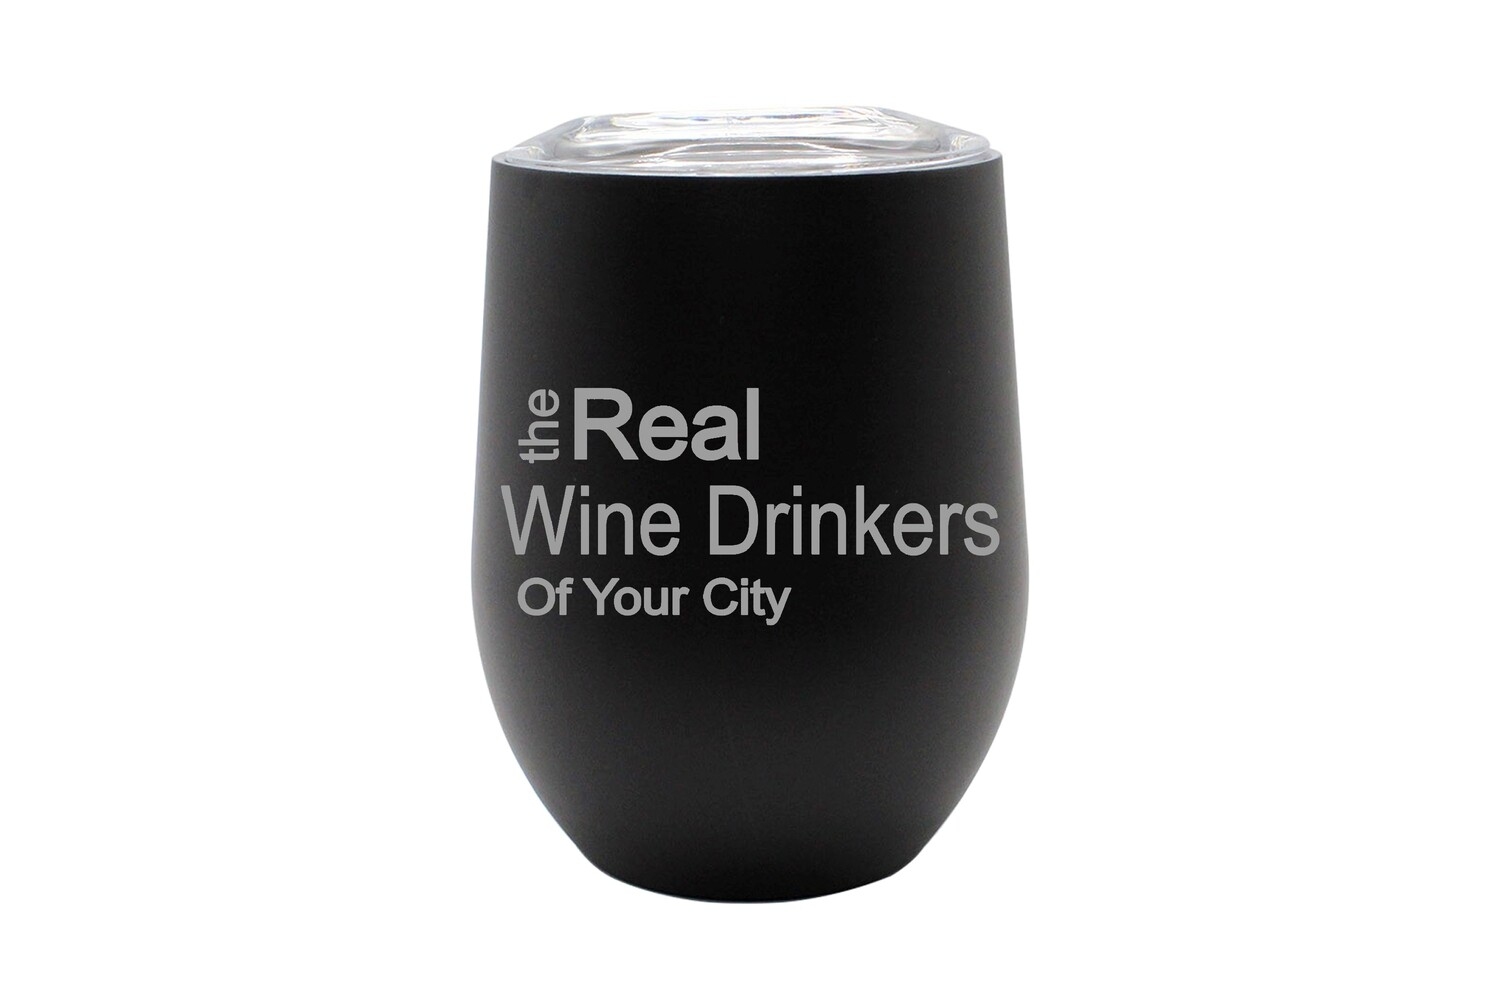 The Real Wine Drinkers of (Add your Custom Location) Insulated Tumbler